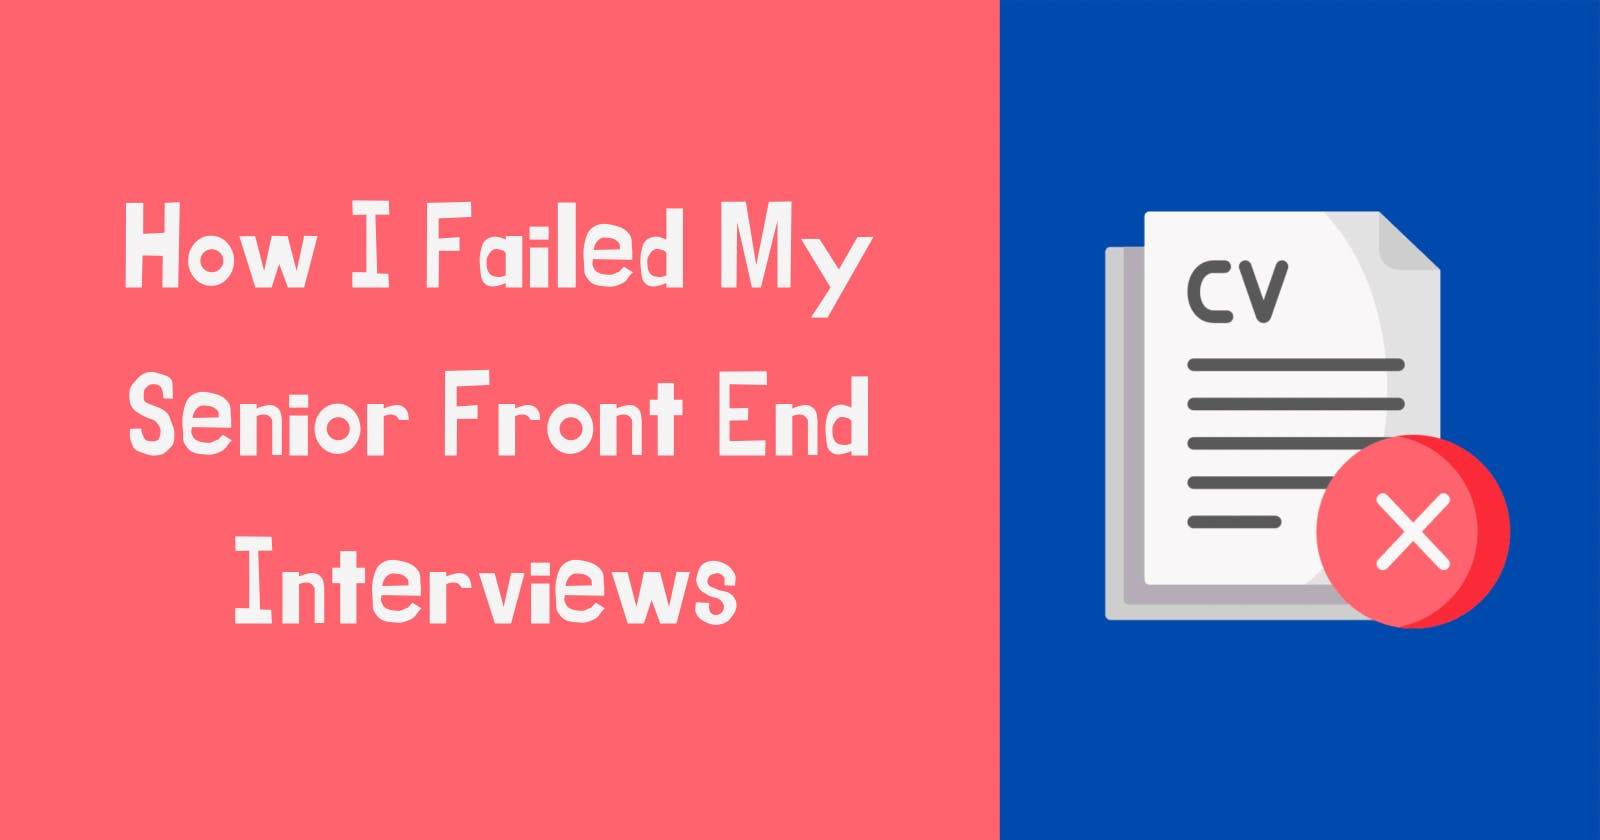 How I Failed My Senior Front End Interviews